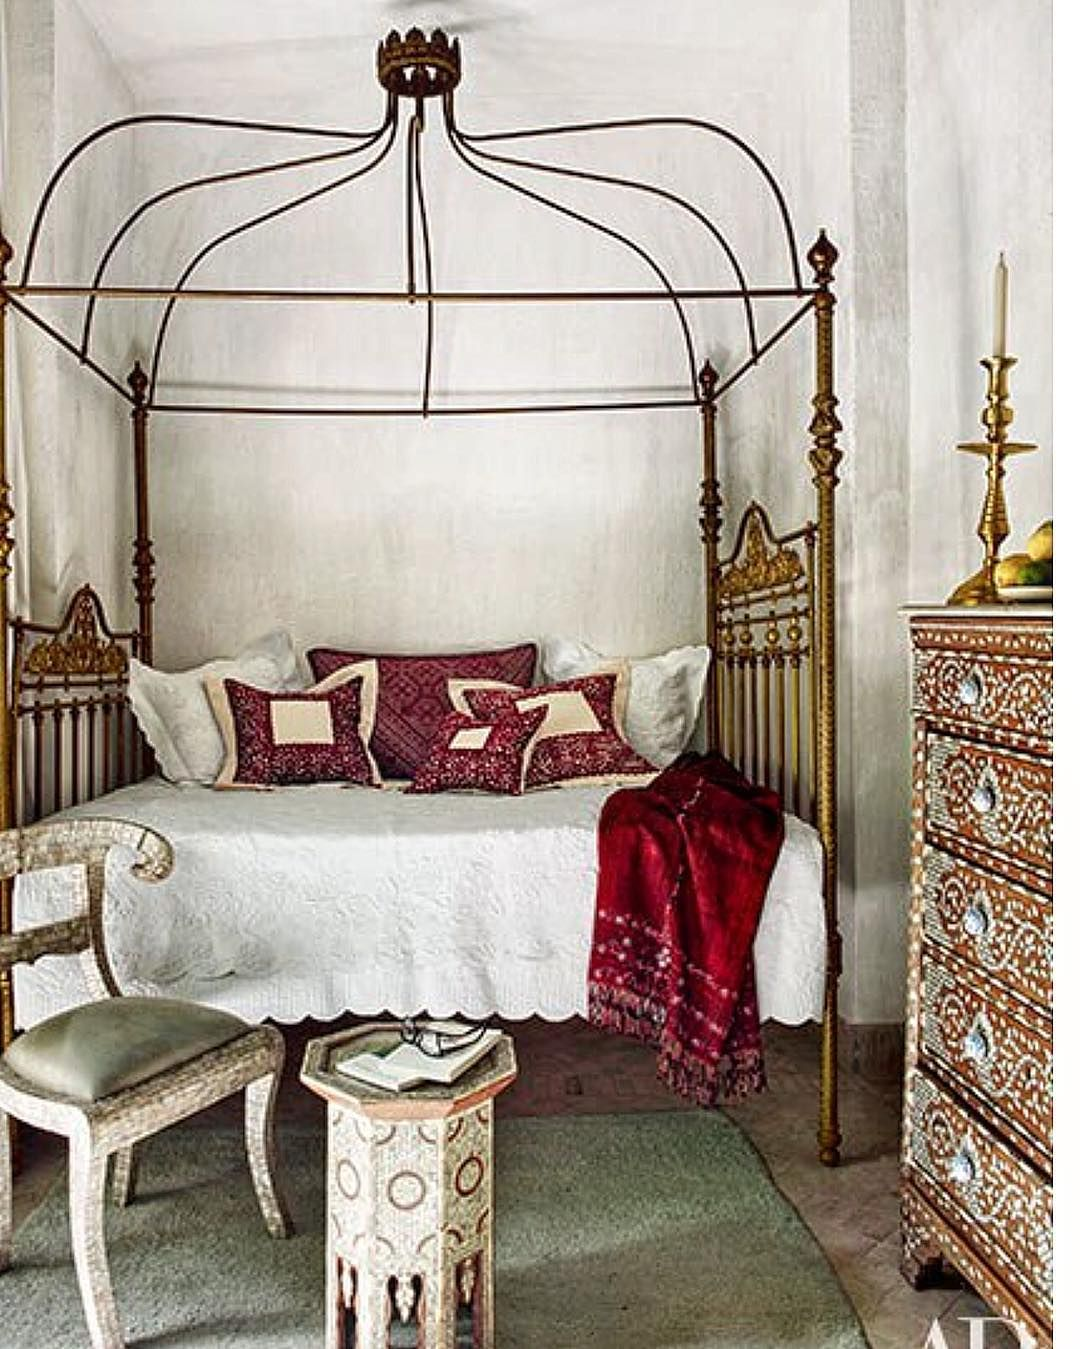 In a bedroom embroidered pillows from Fez